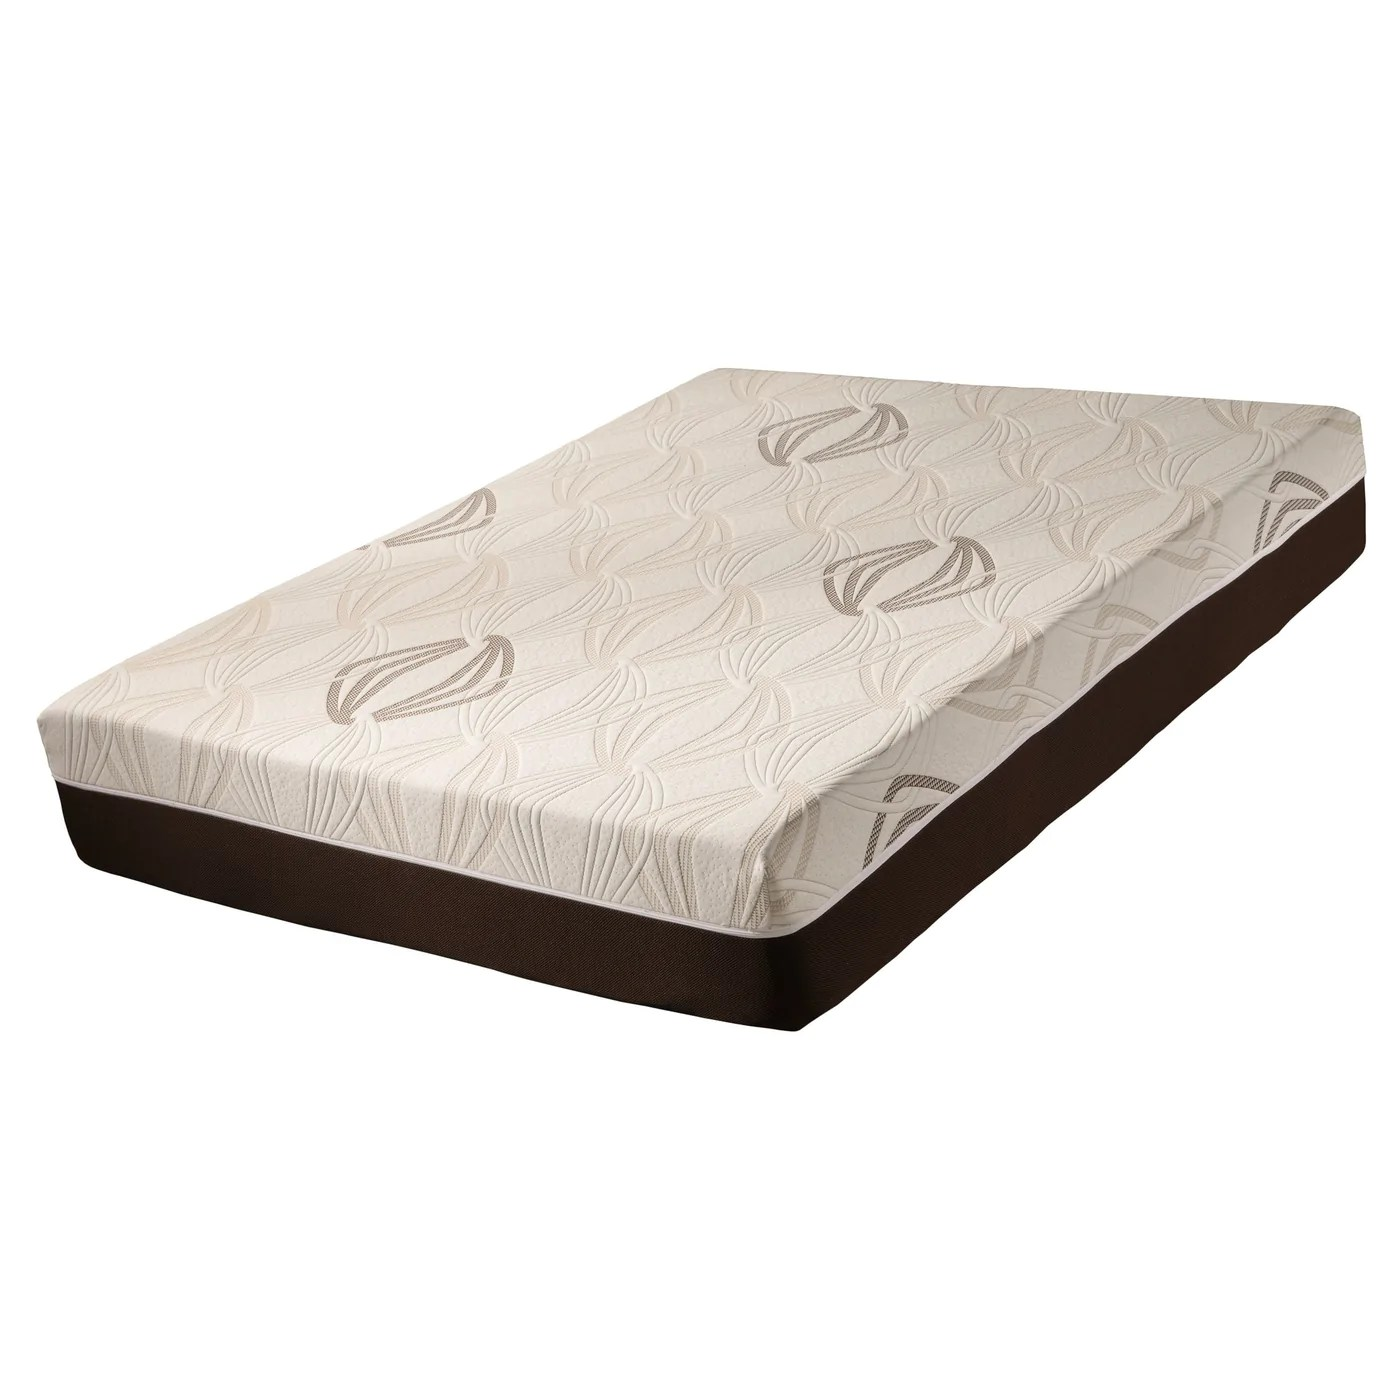 Foam Or Latex Mattresses Blissful Nights Violet 11 In Gel Memory Foam Latex Mattress 11gvlviolet